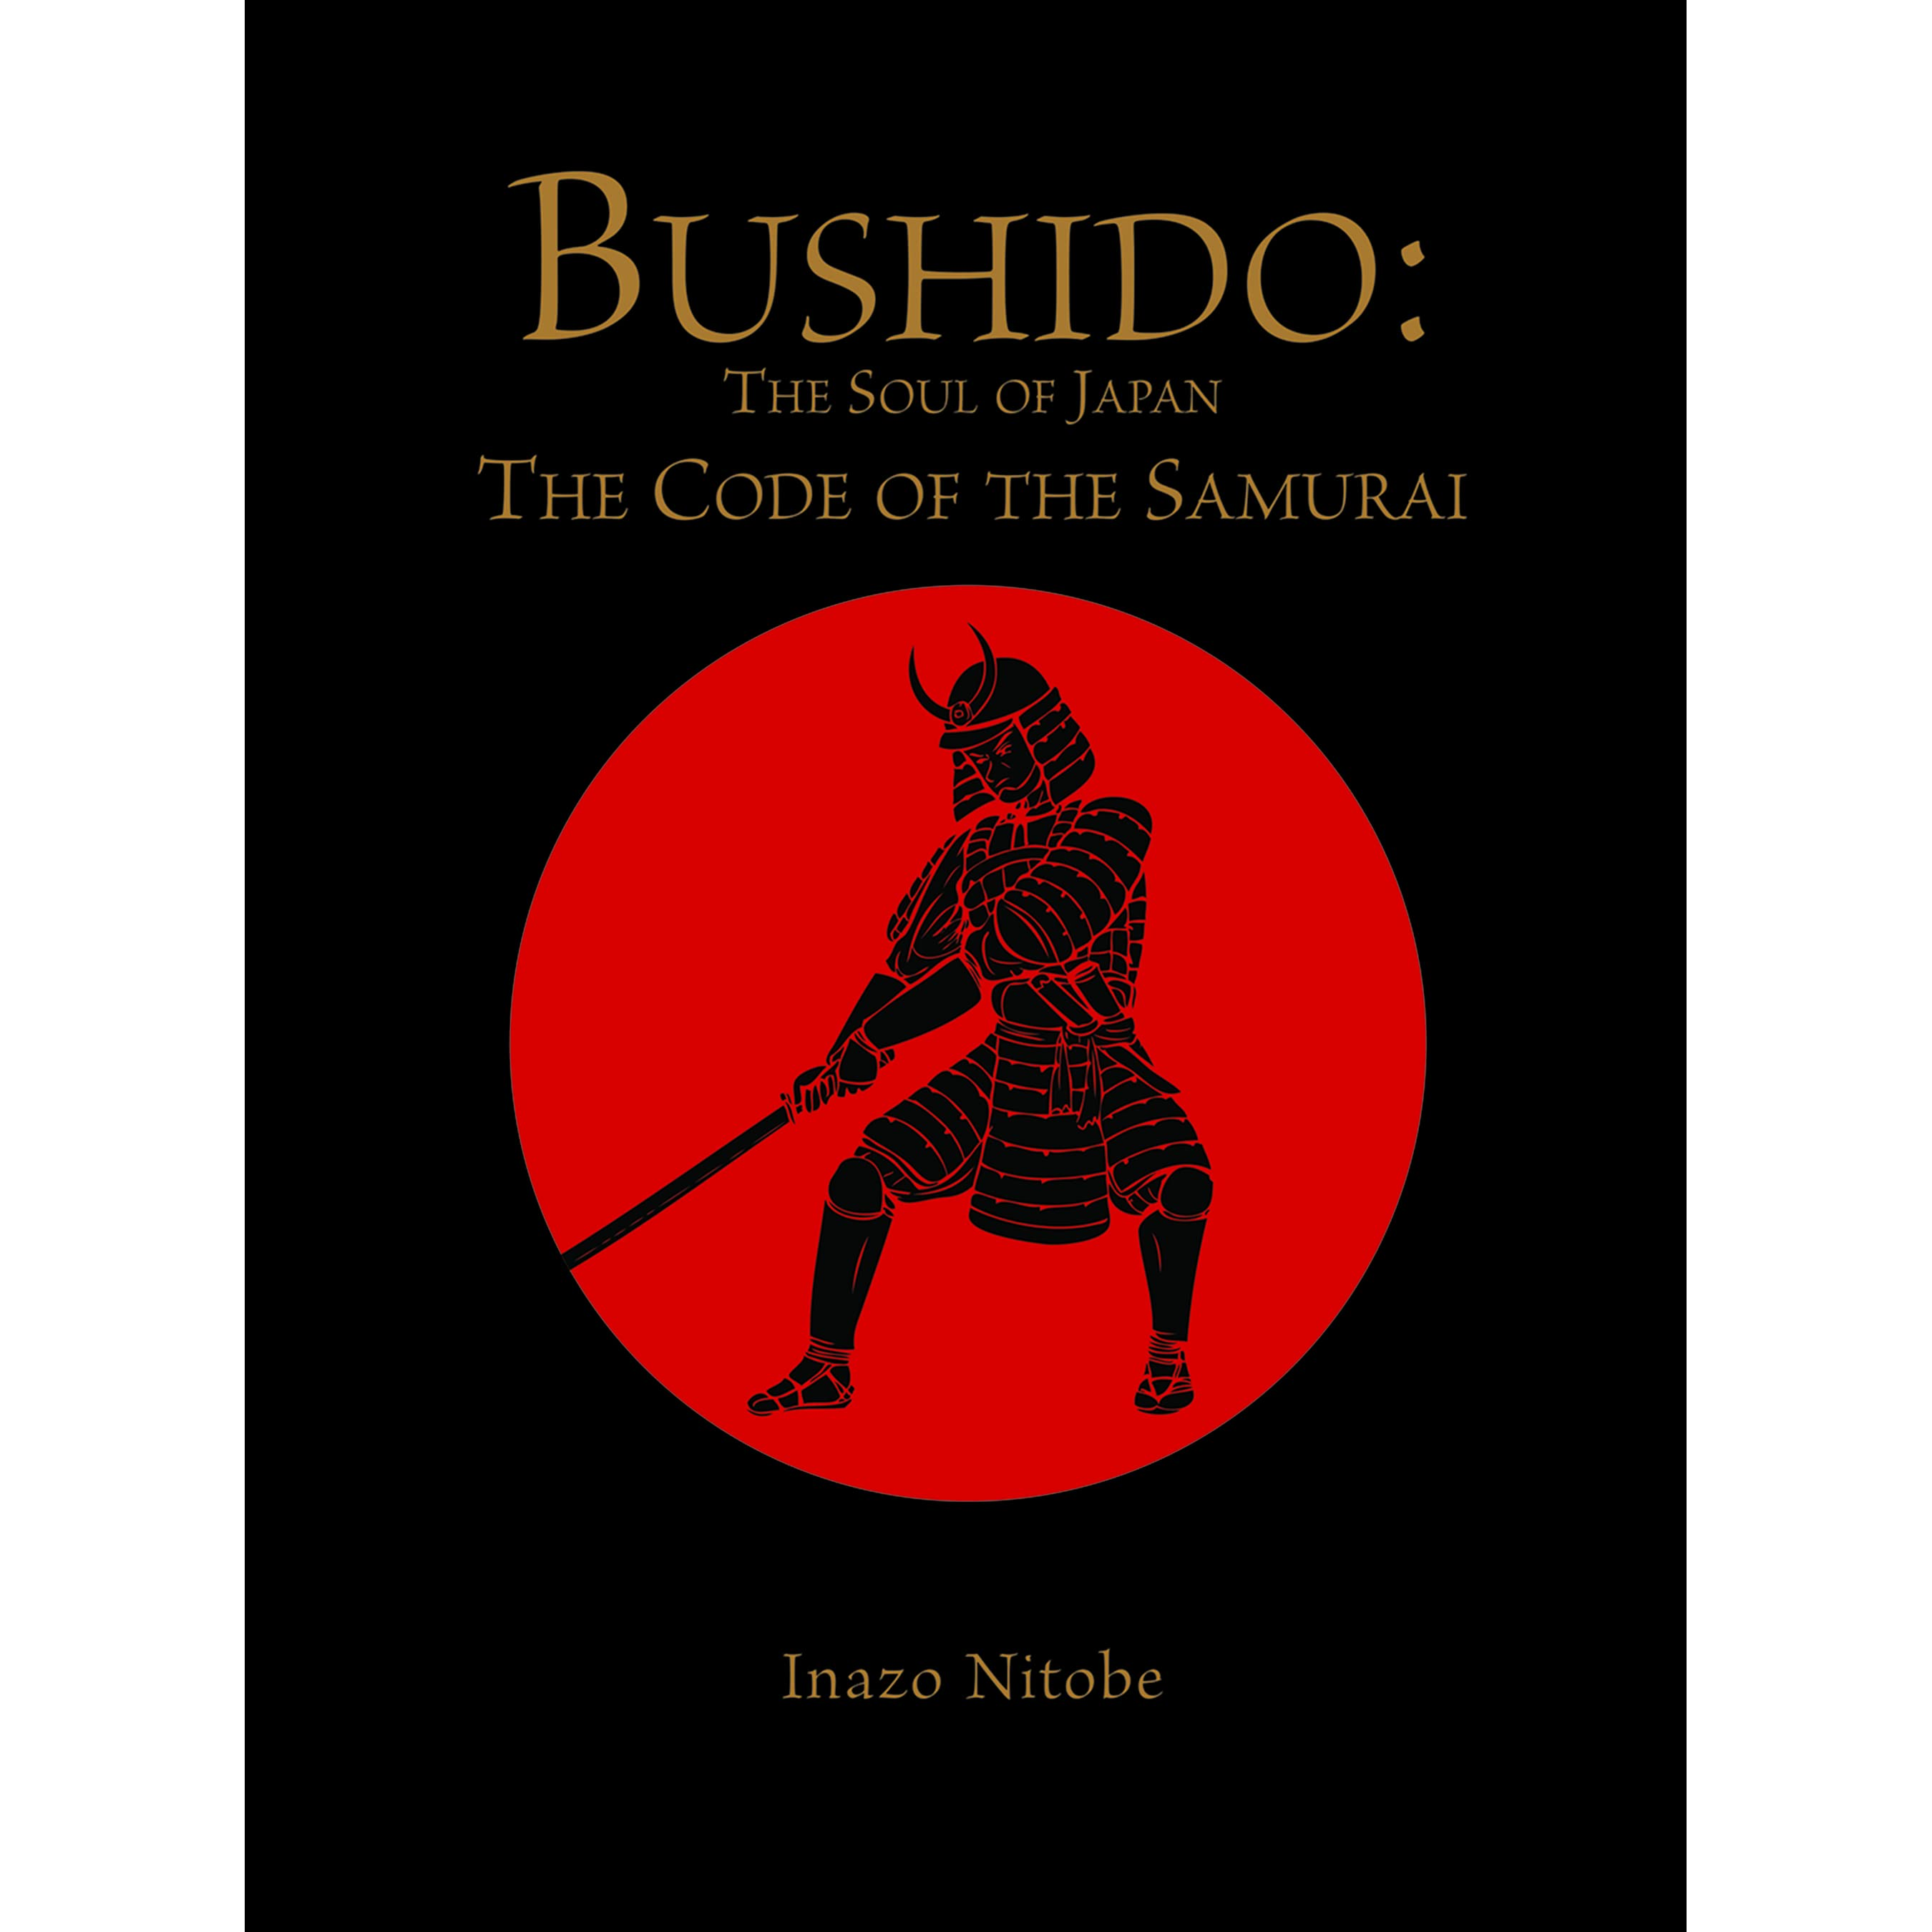 an analysis of the code of bushido Content the book records tsunetomo's views on bushido, the warrior code of the samurai hagakure is sometimes said to assert that bushido is really the way of dying or living as though one was already dead, and that a samurai must be willing to die at any moment in order to be true to his lord.